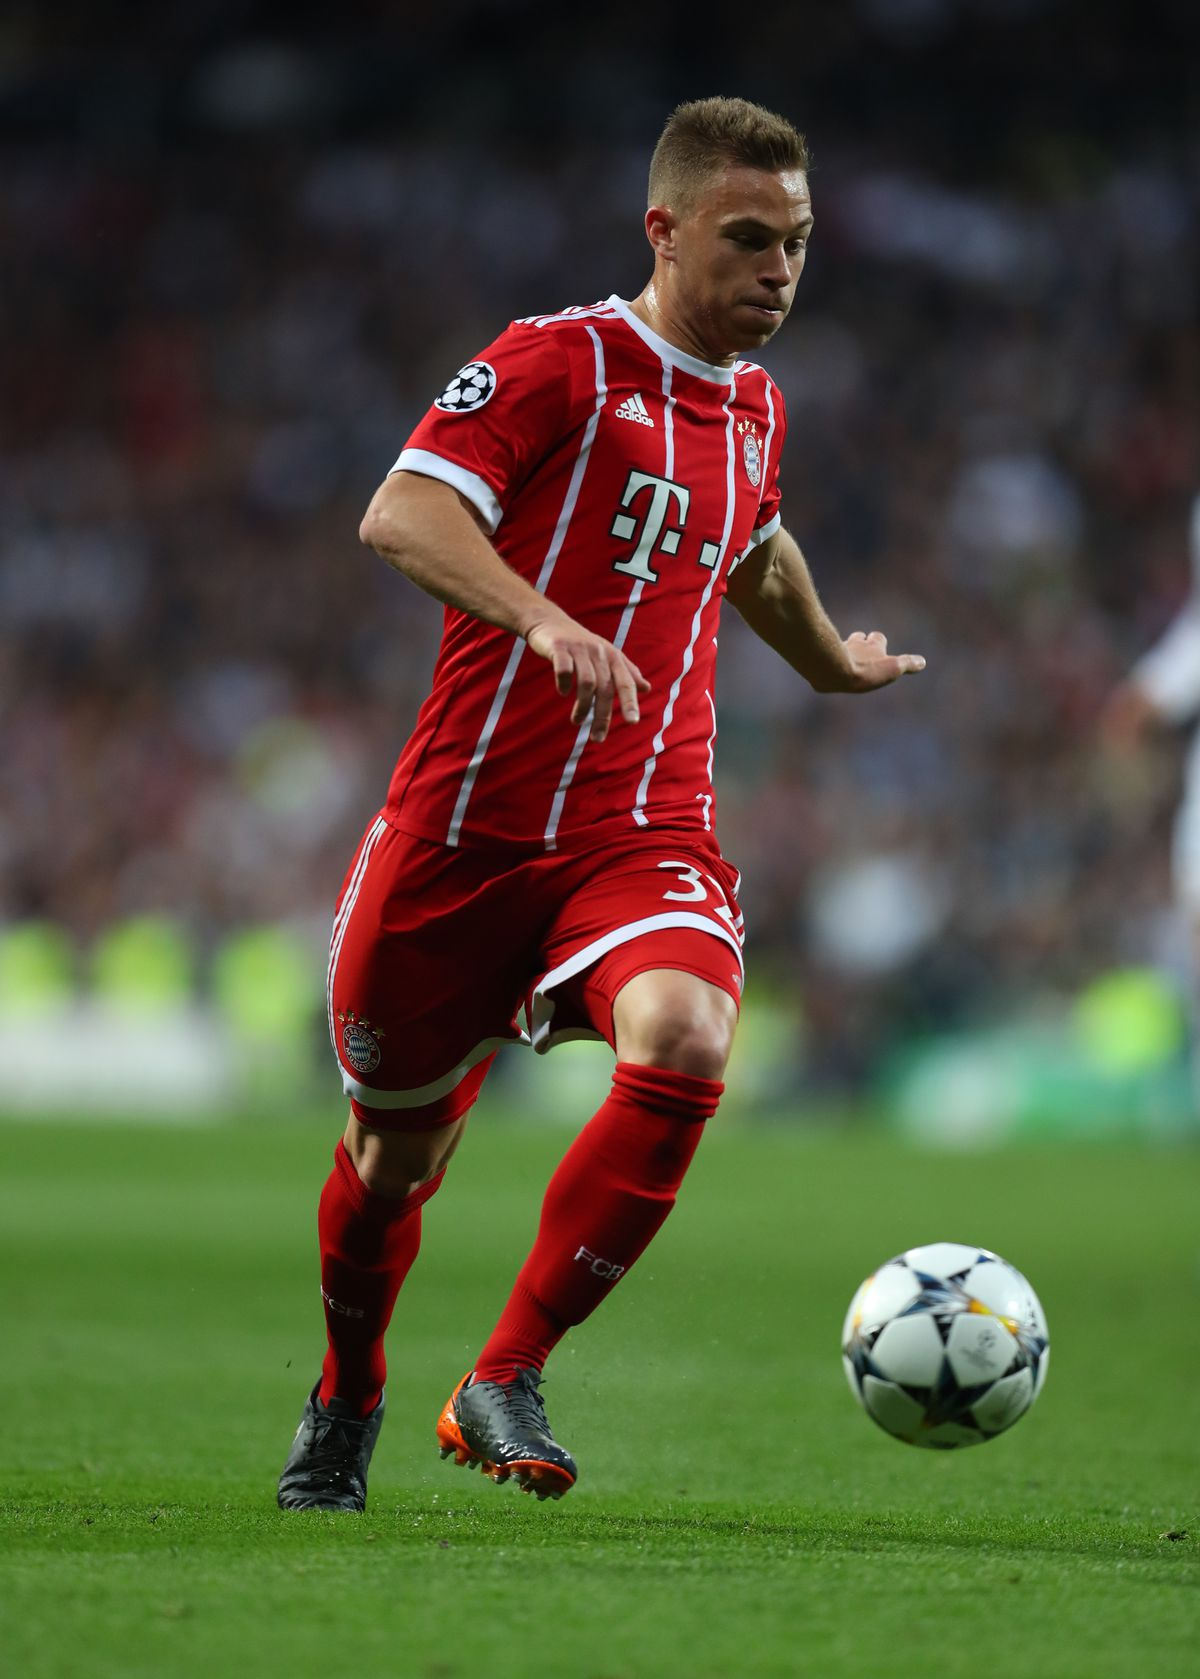 Joshua Kimmich continued to elevate his game to new heights this year.